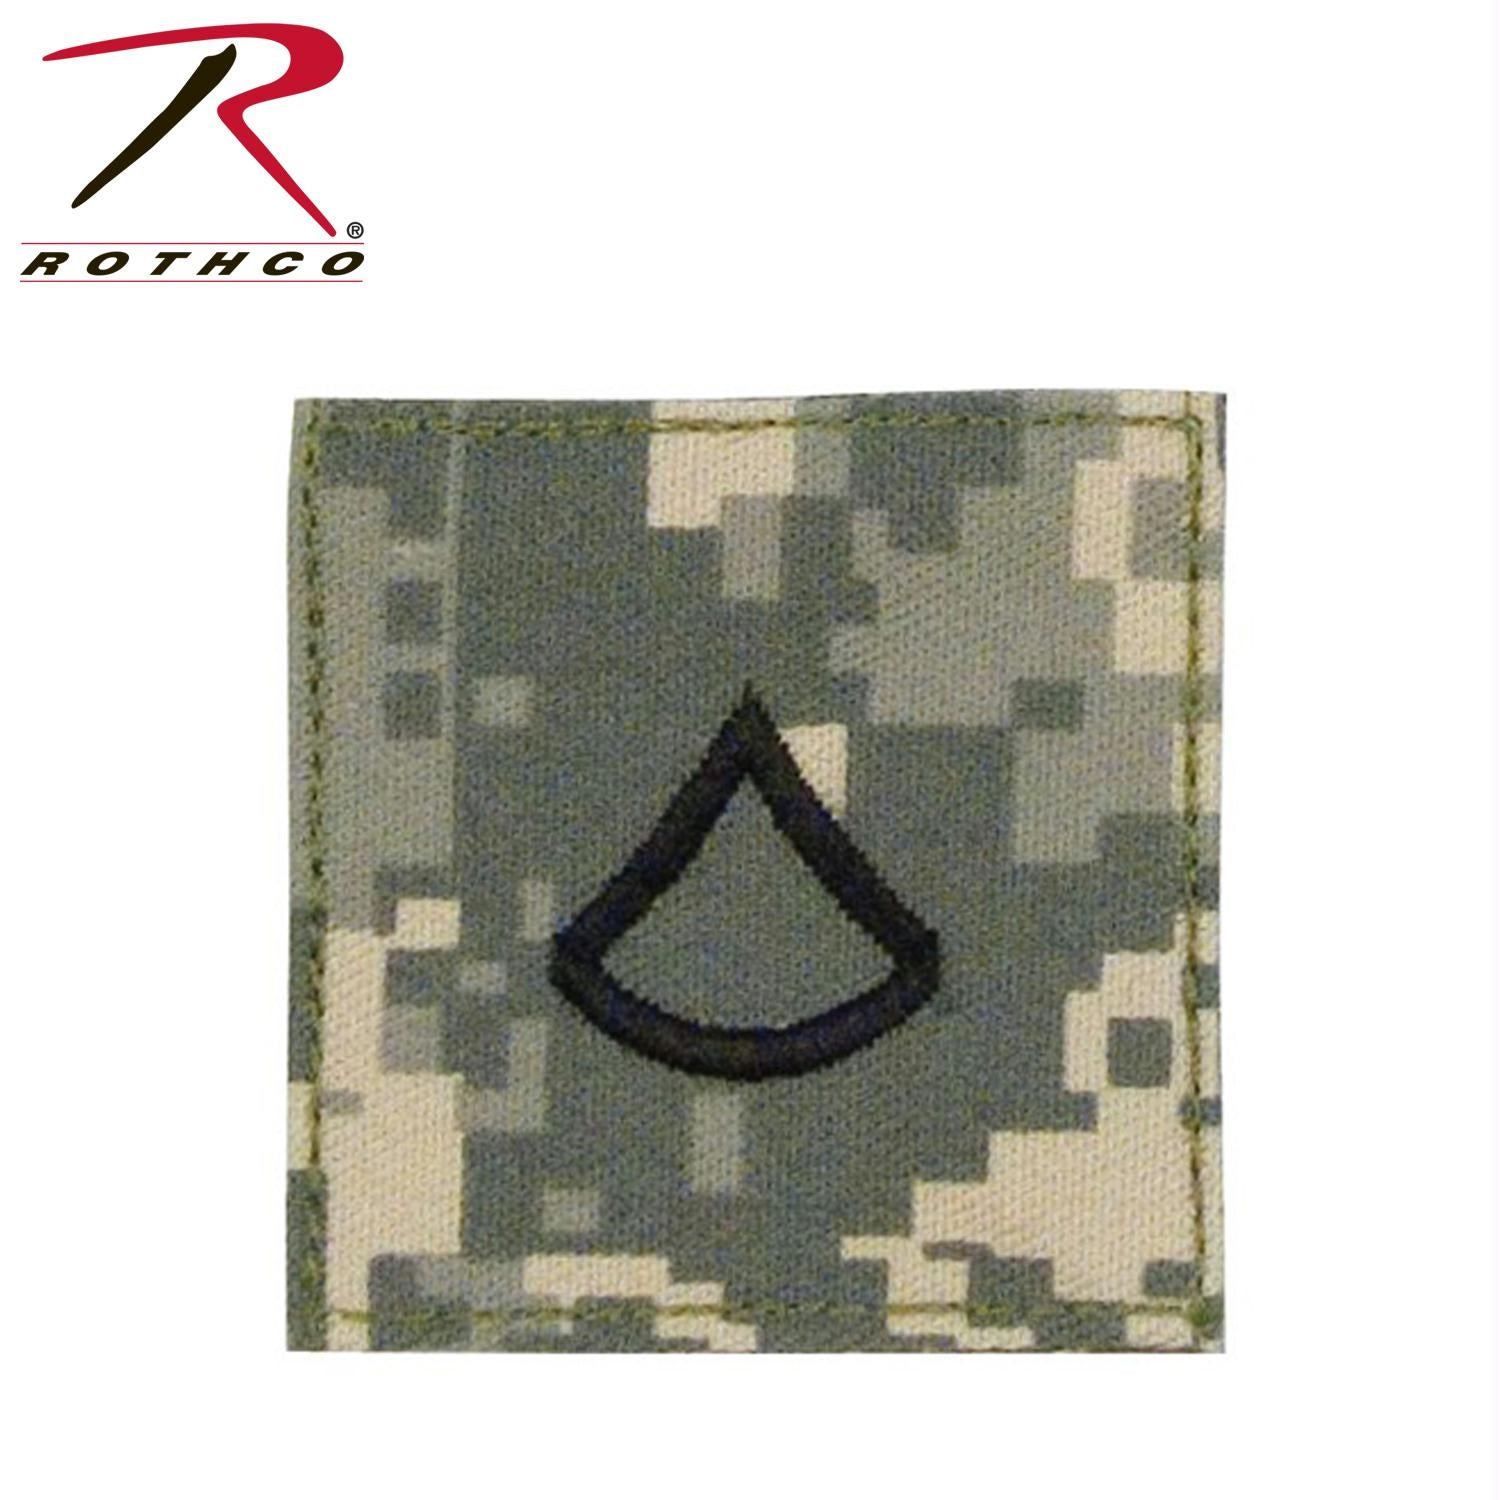 Official U.S. Made Embroidered Rank Insignia - Private 1st Class